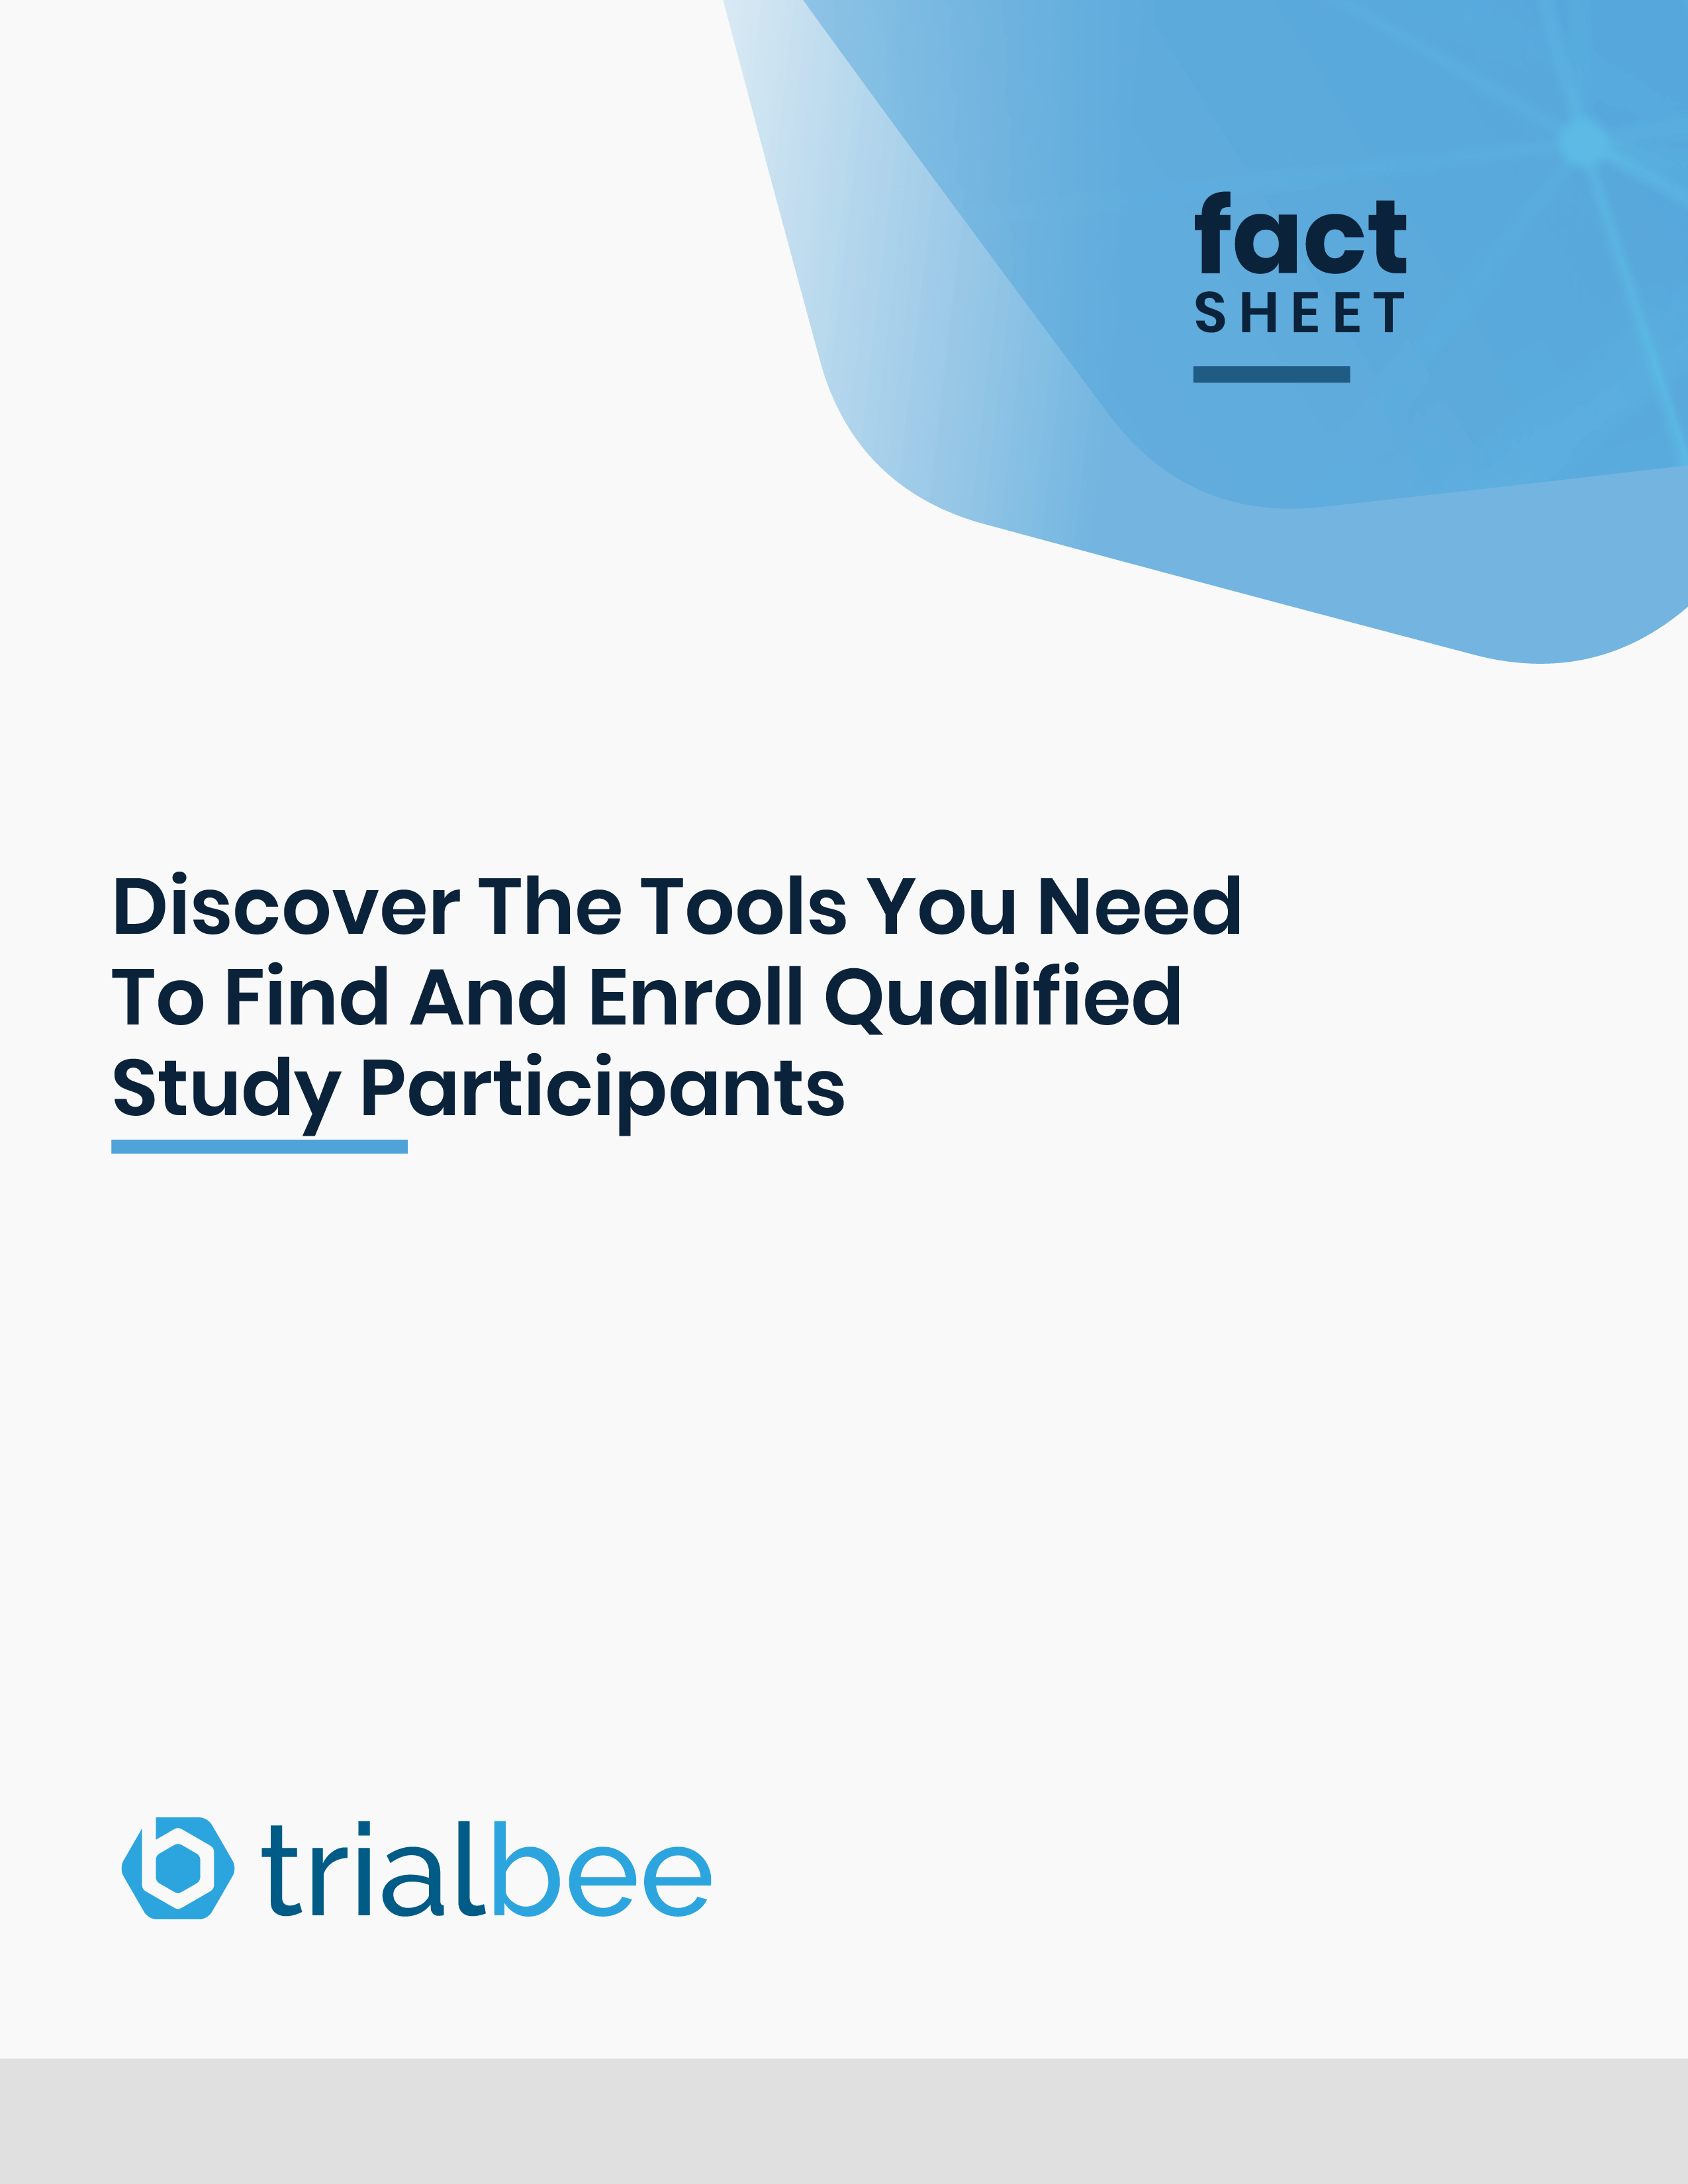 Discover The Tools You Need To Find And Enroll Qualified Study Participants